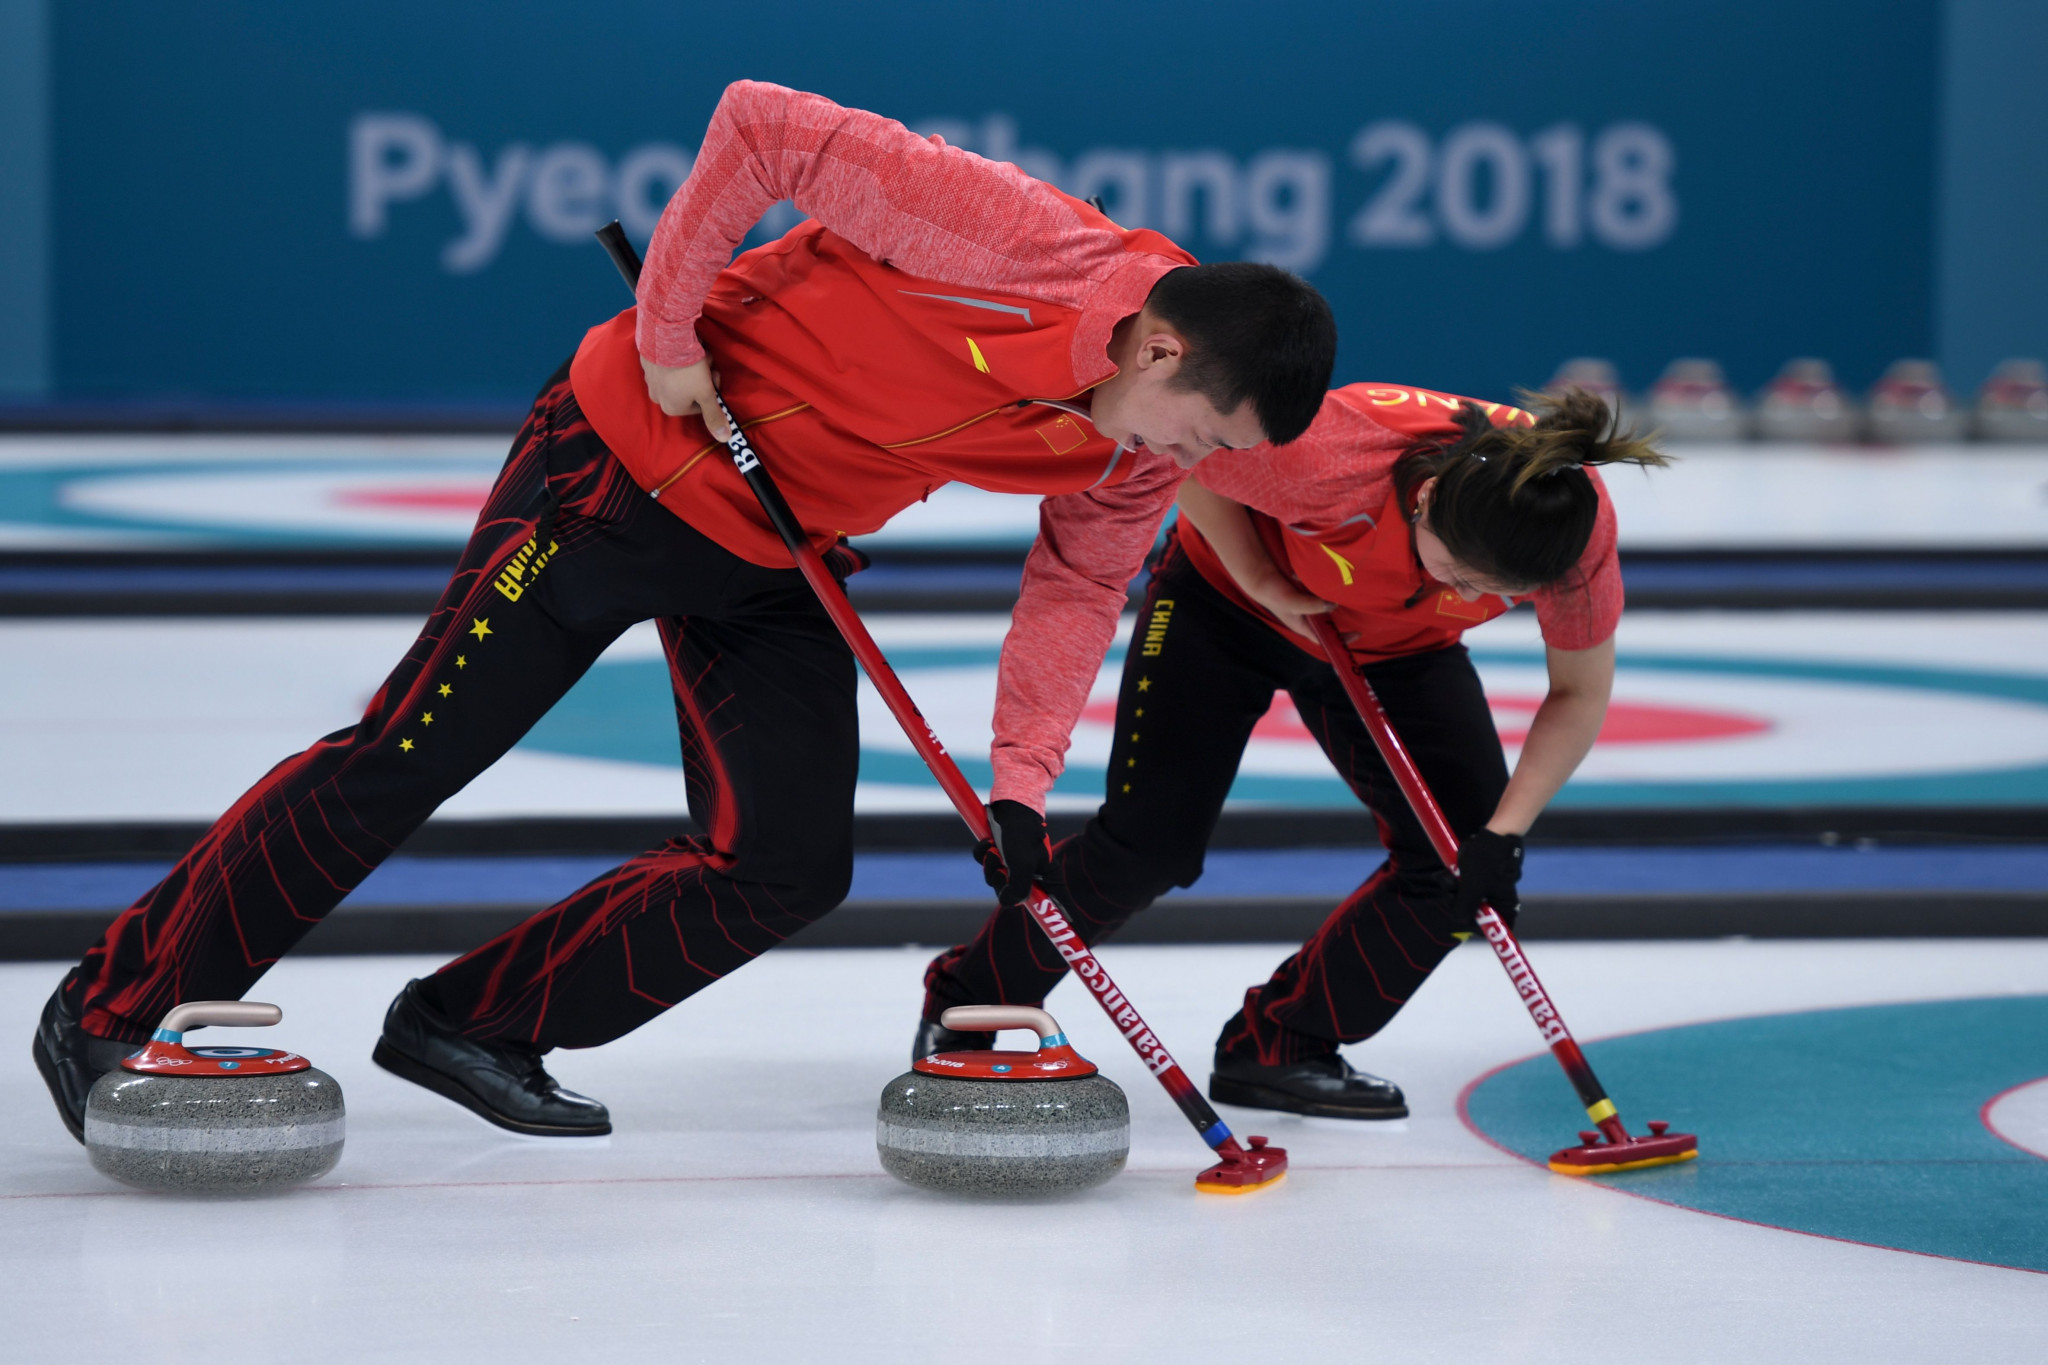 China has expanded its national curling squad in preparation for their home Beijing 2022 Winter Olympics ©Getty Images